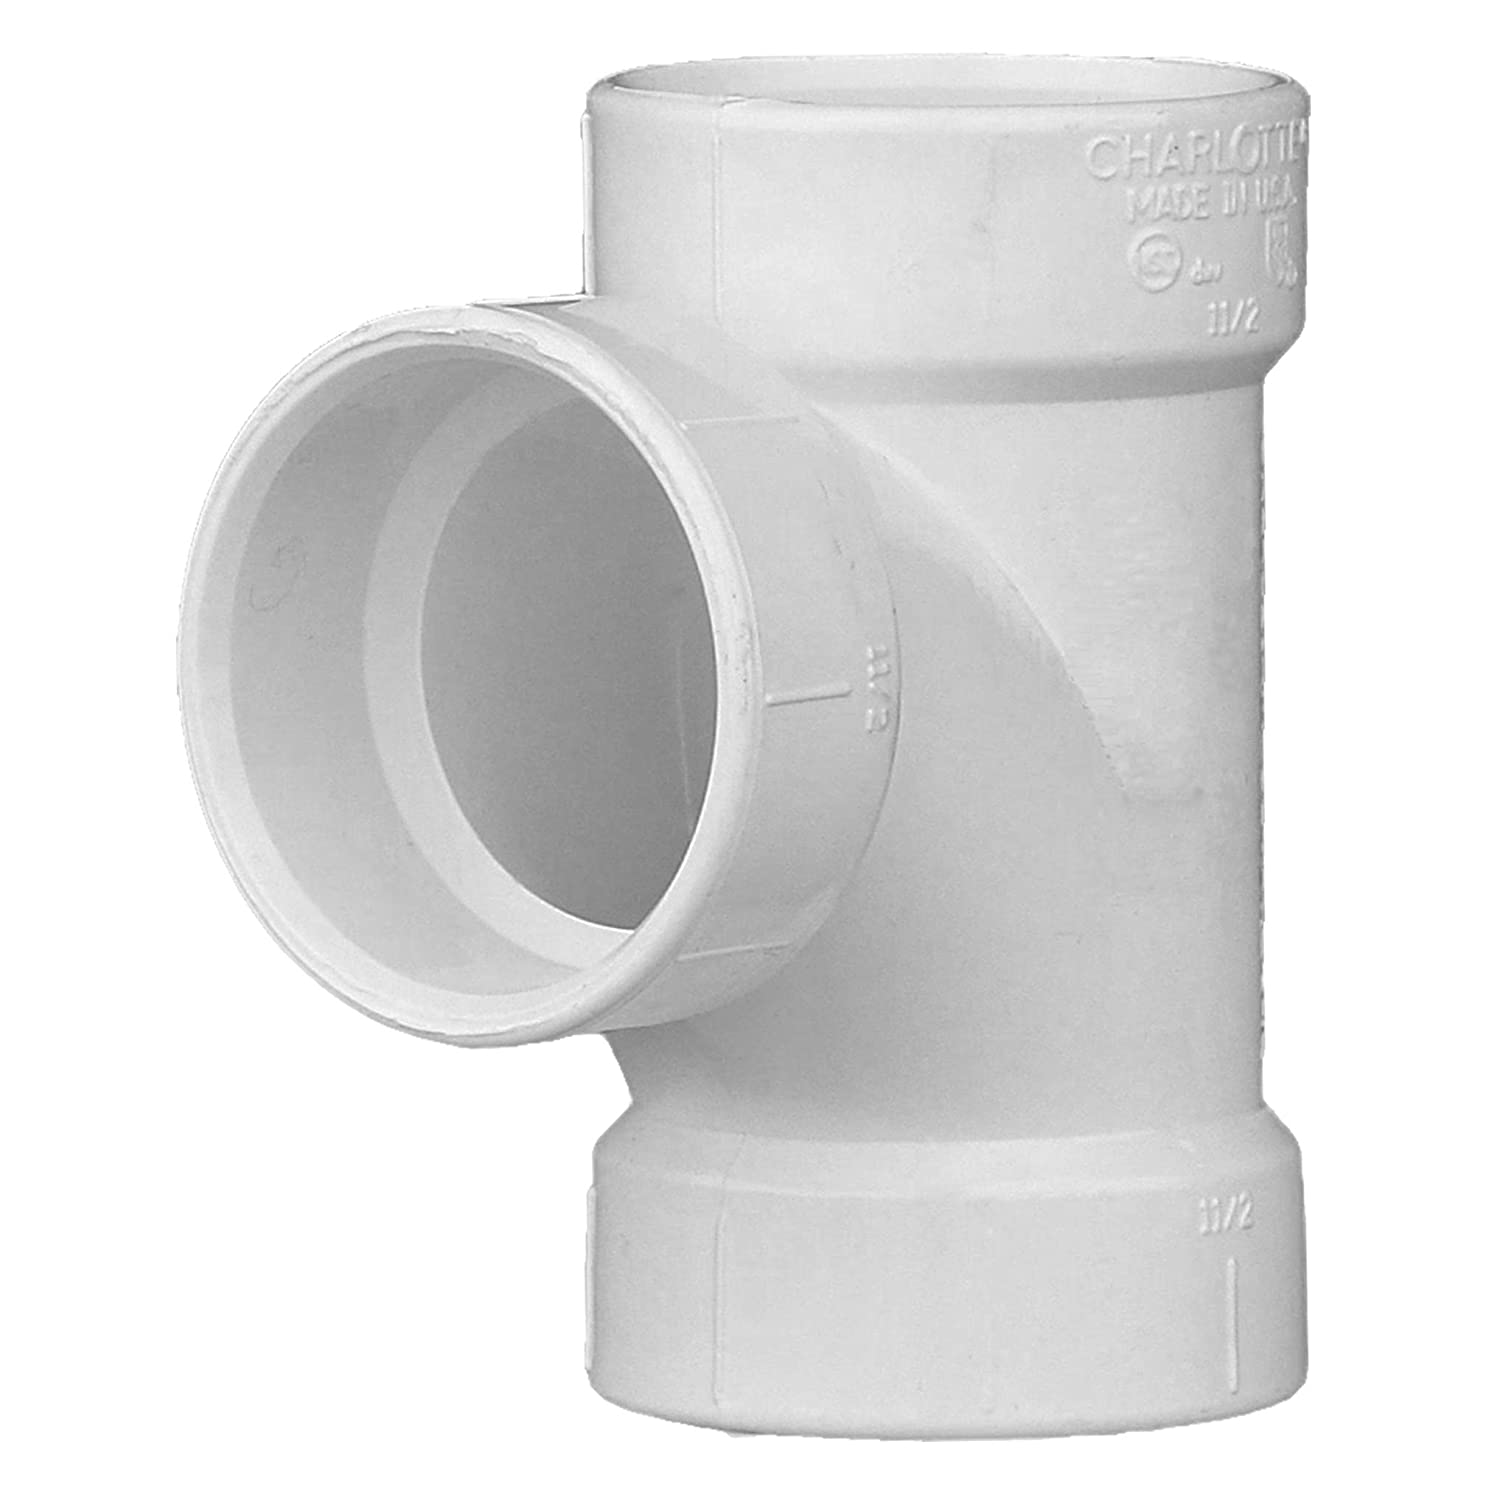 Drain, Waste and Vent Durable High Tensile and Sound Deadening for Home or Industrial Use Single Unit Schedule 40 PVC DWV Charlotte Pipe 1-1//2 Sanitary Tee Pipe Fitting Easy to Install